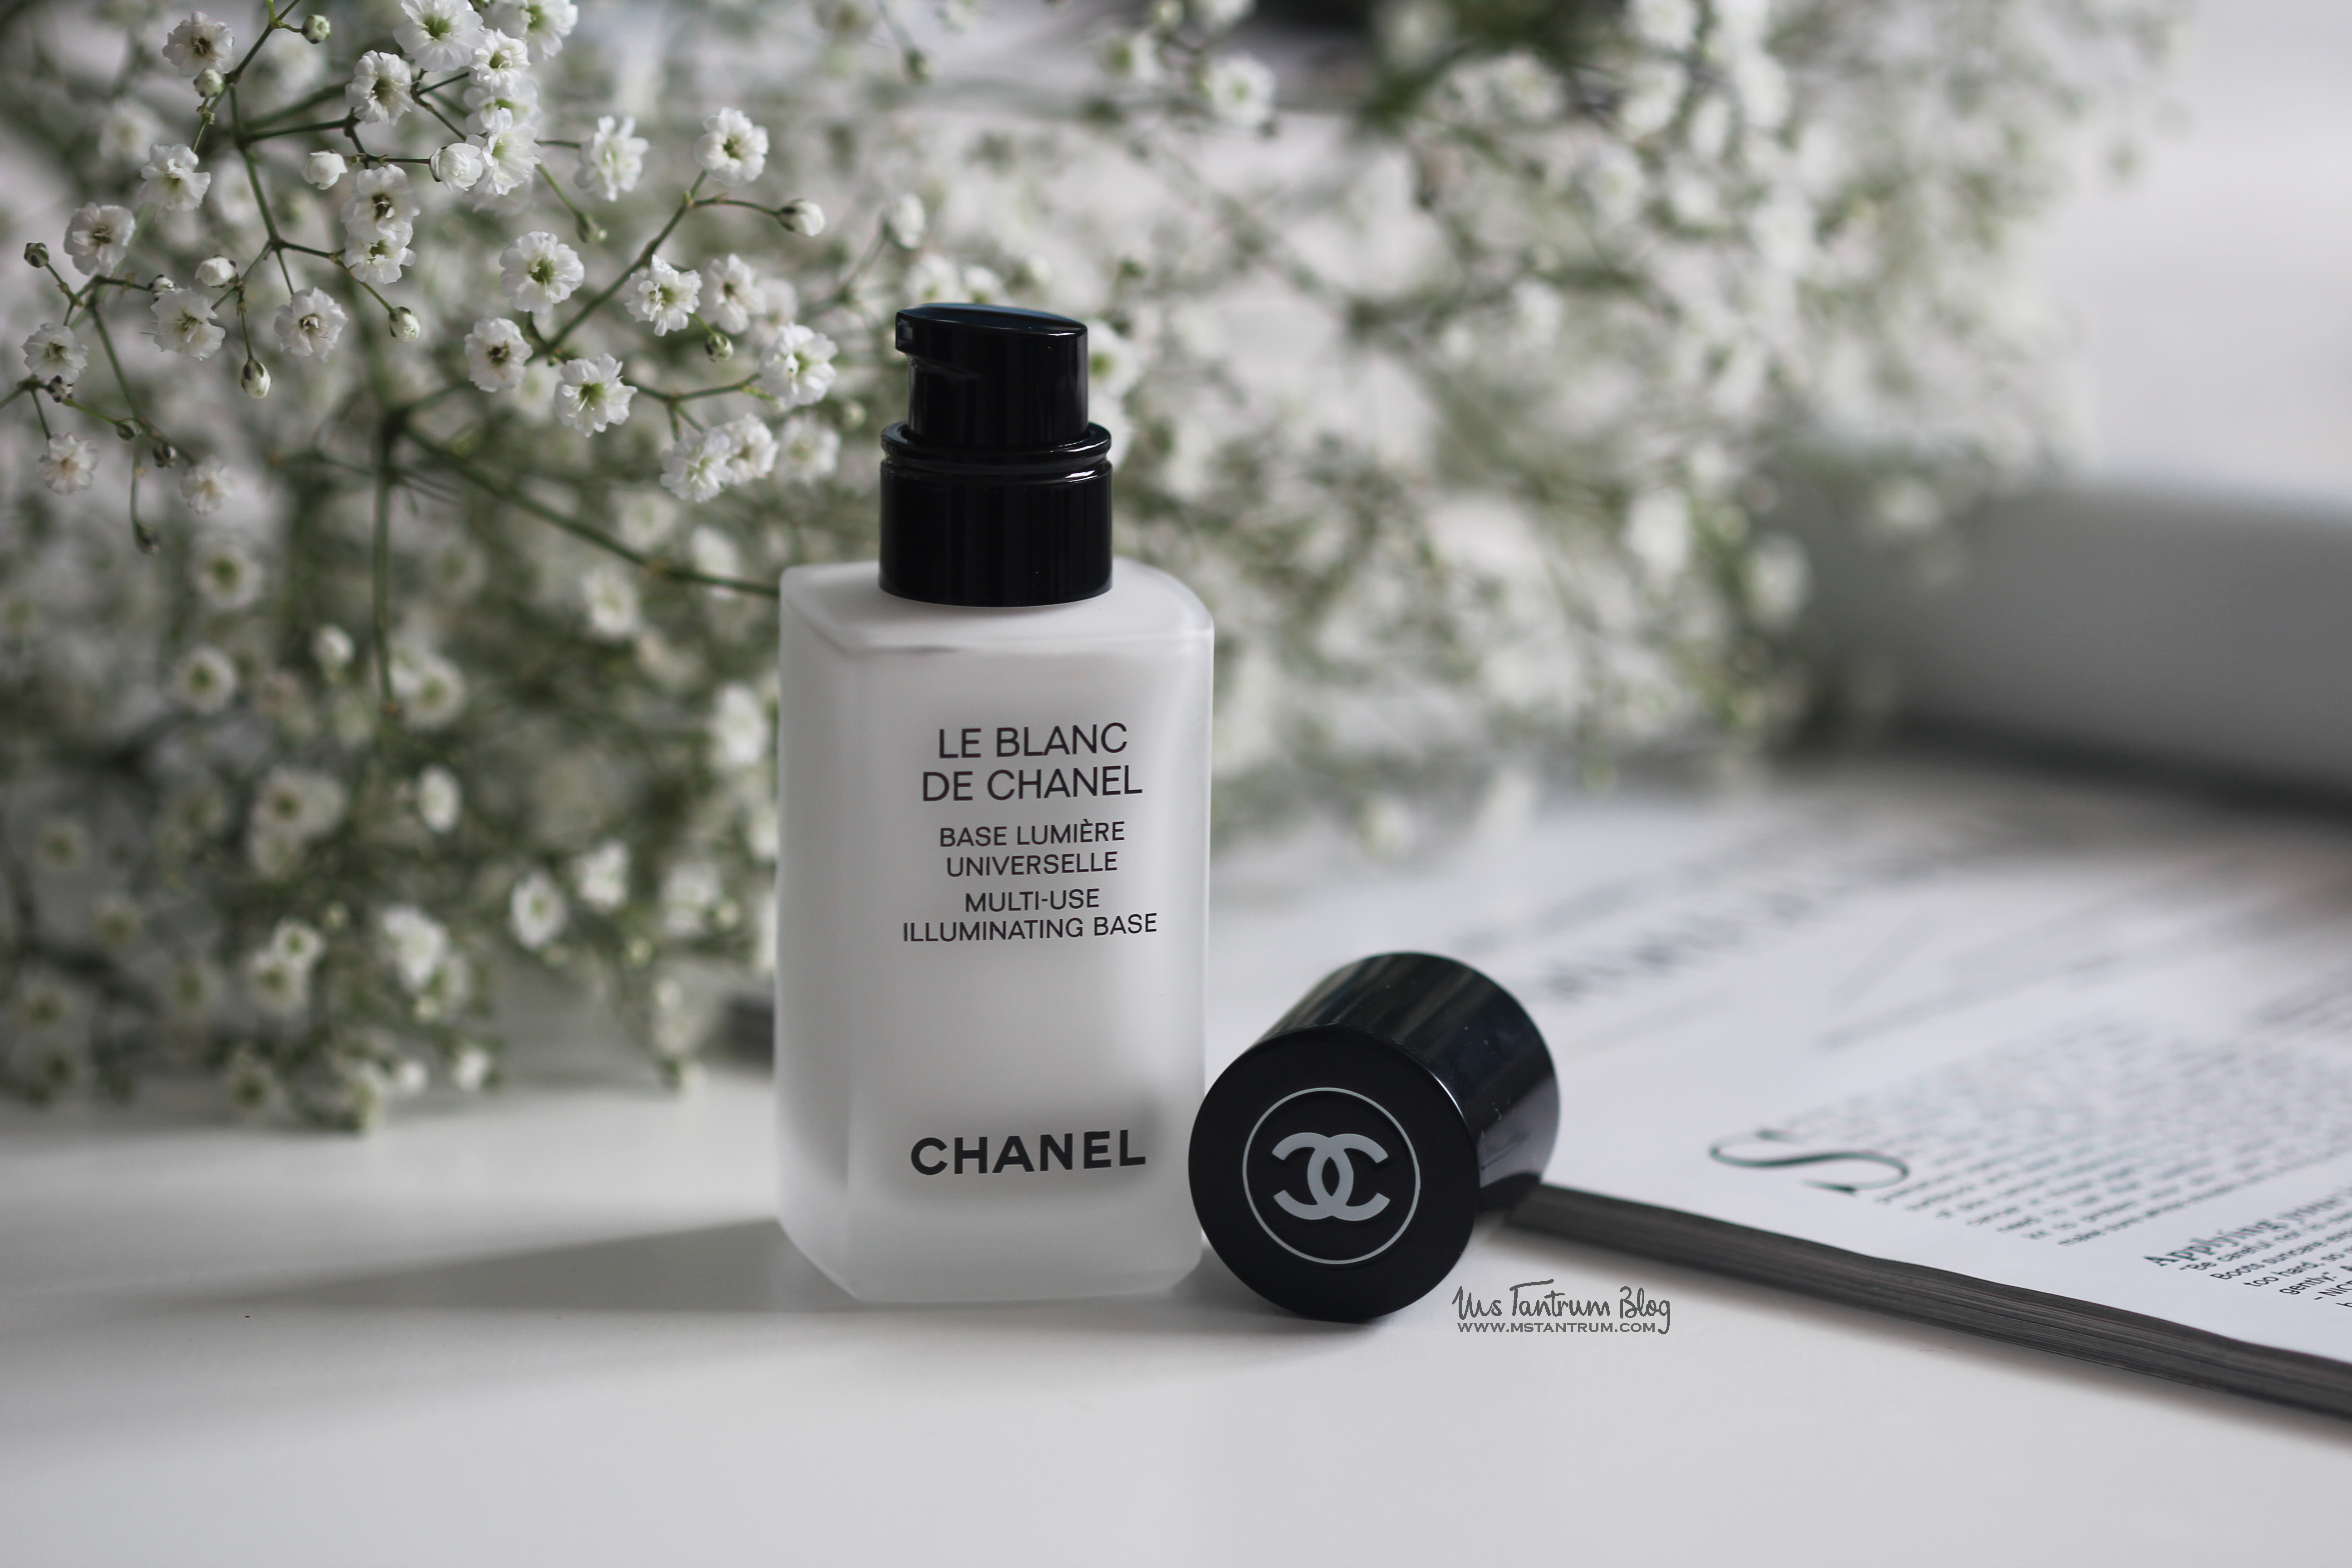 Le Blanc De Chanel Multi Use